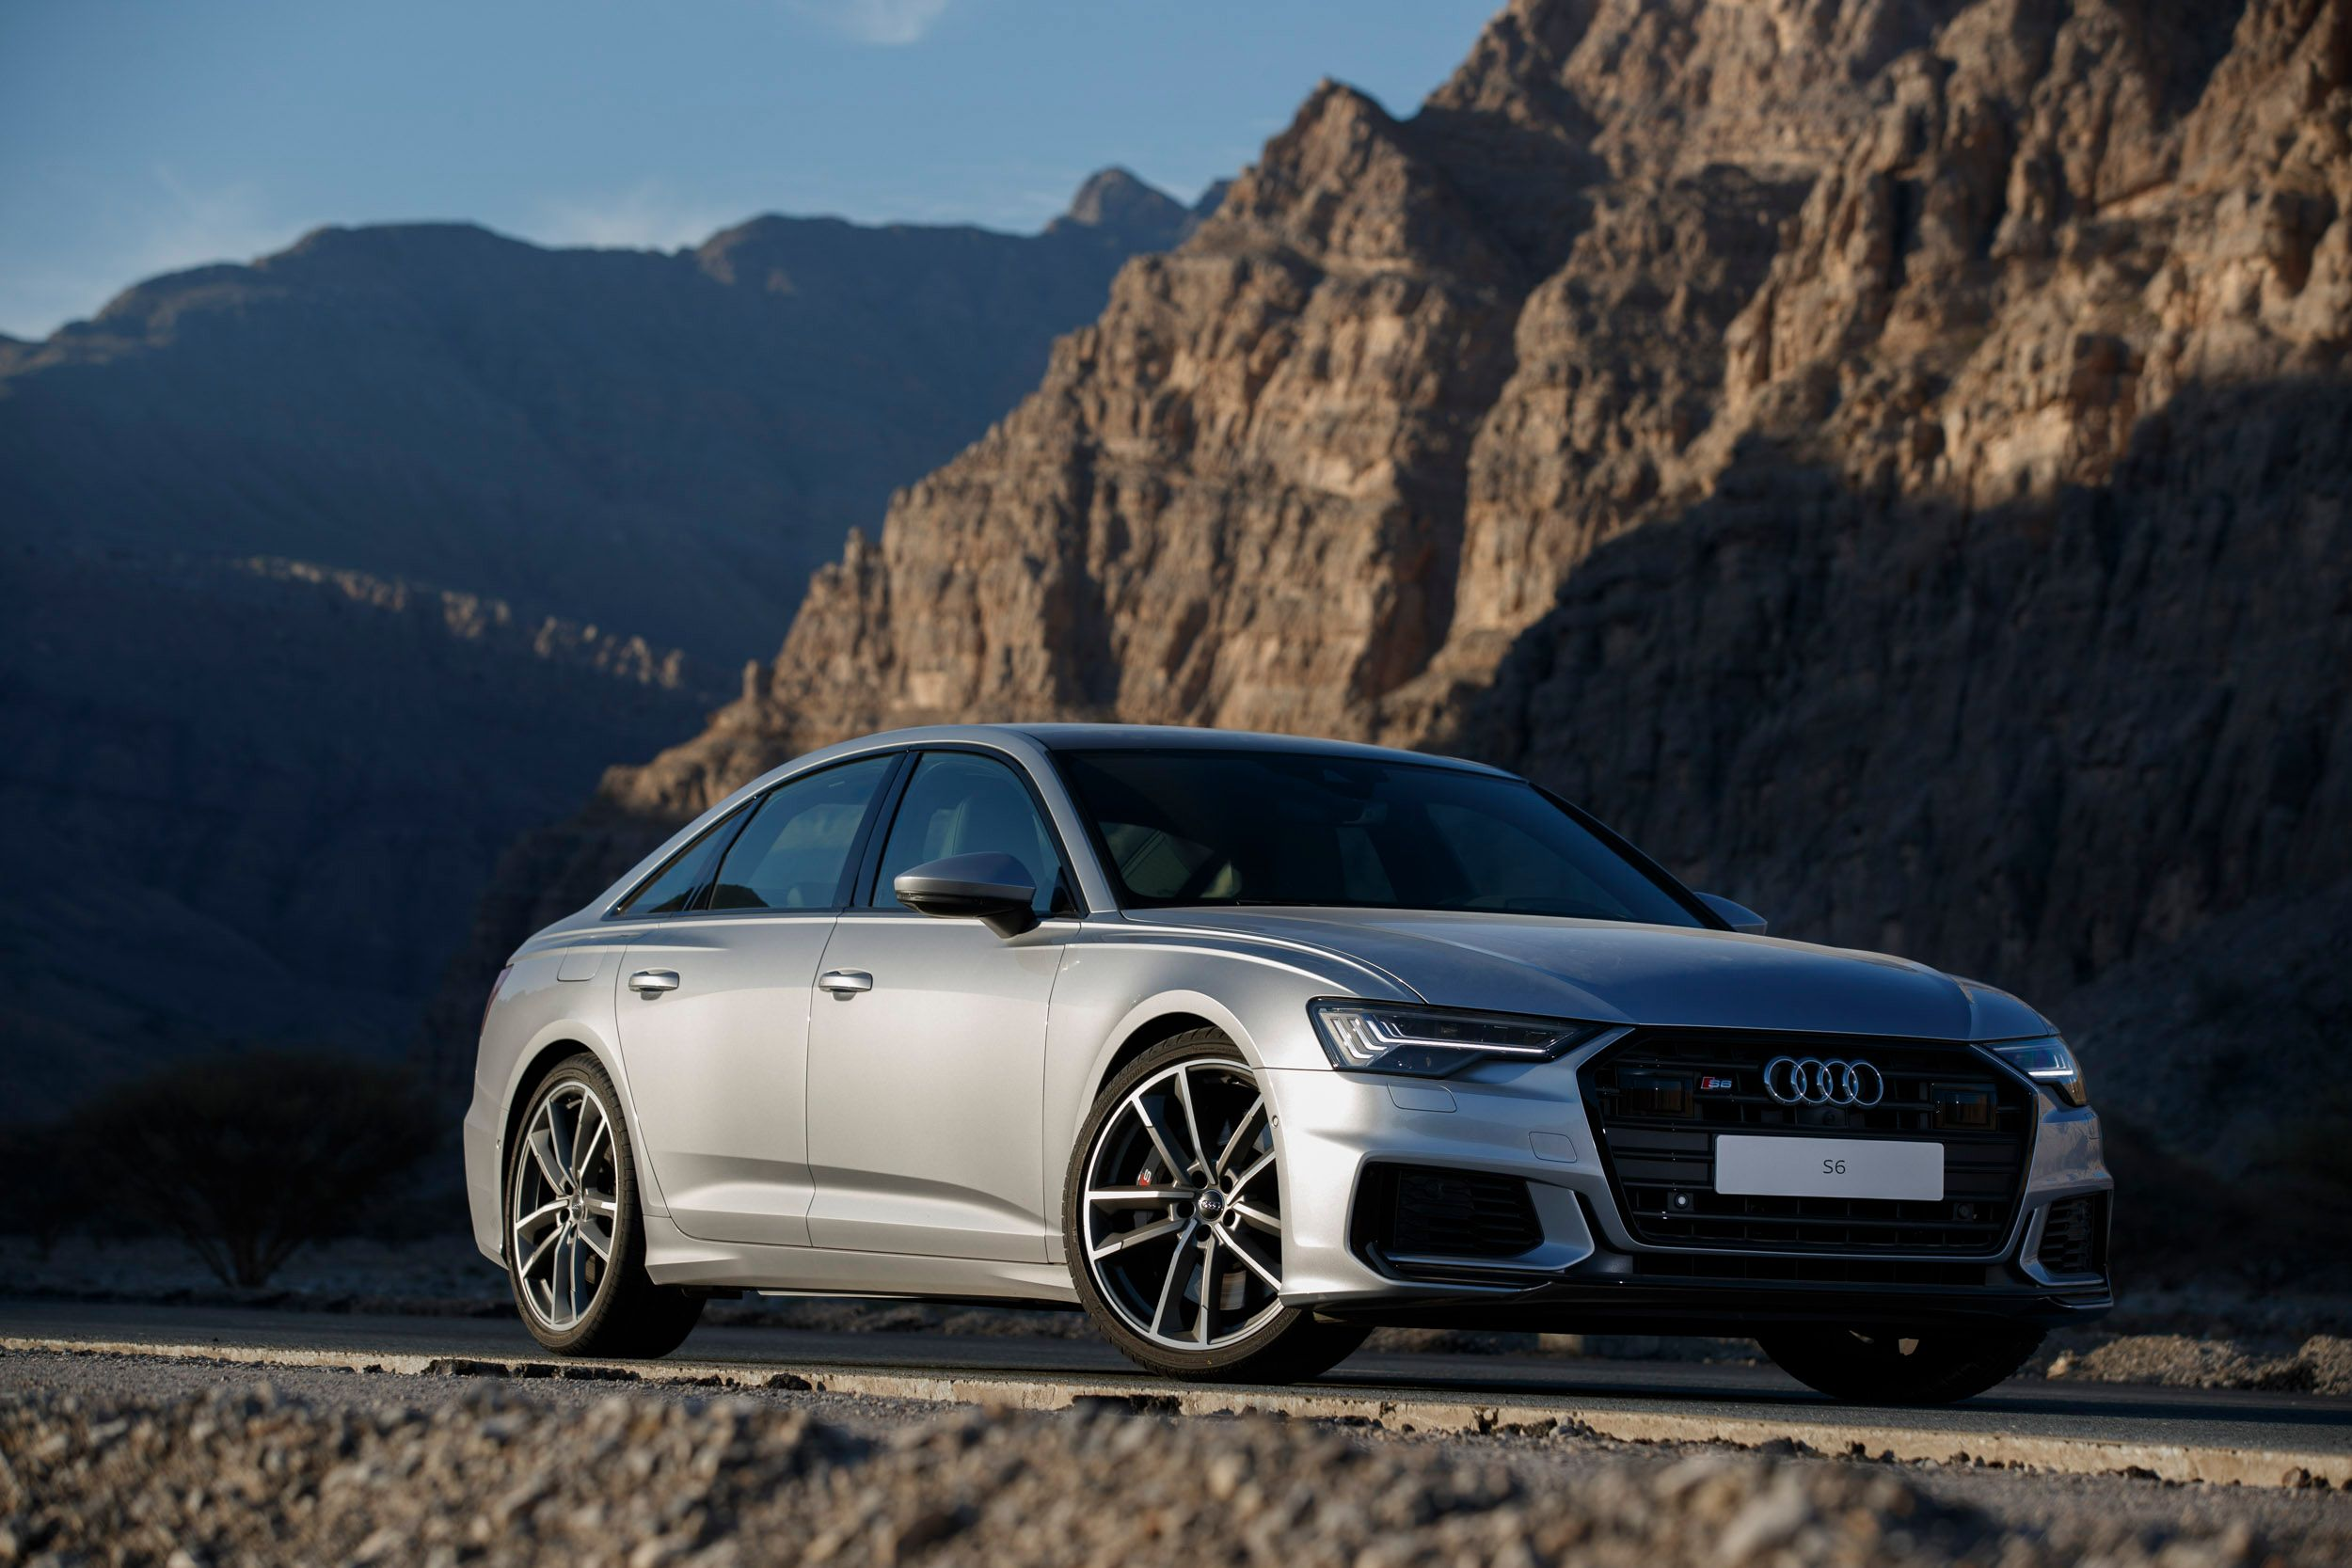 Audi Car A6 Price In India 2021 - First drive review: 2020 ...